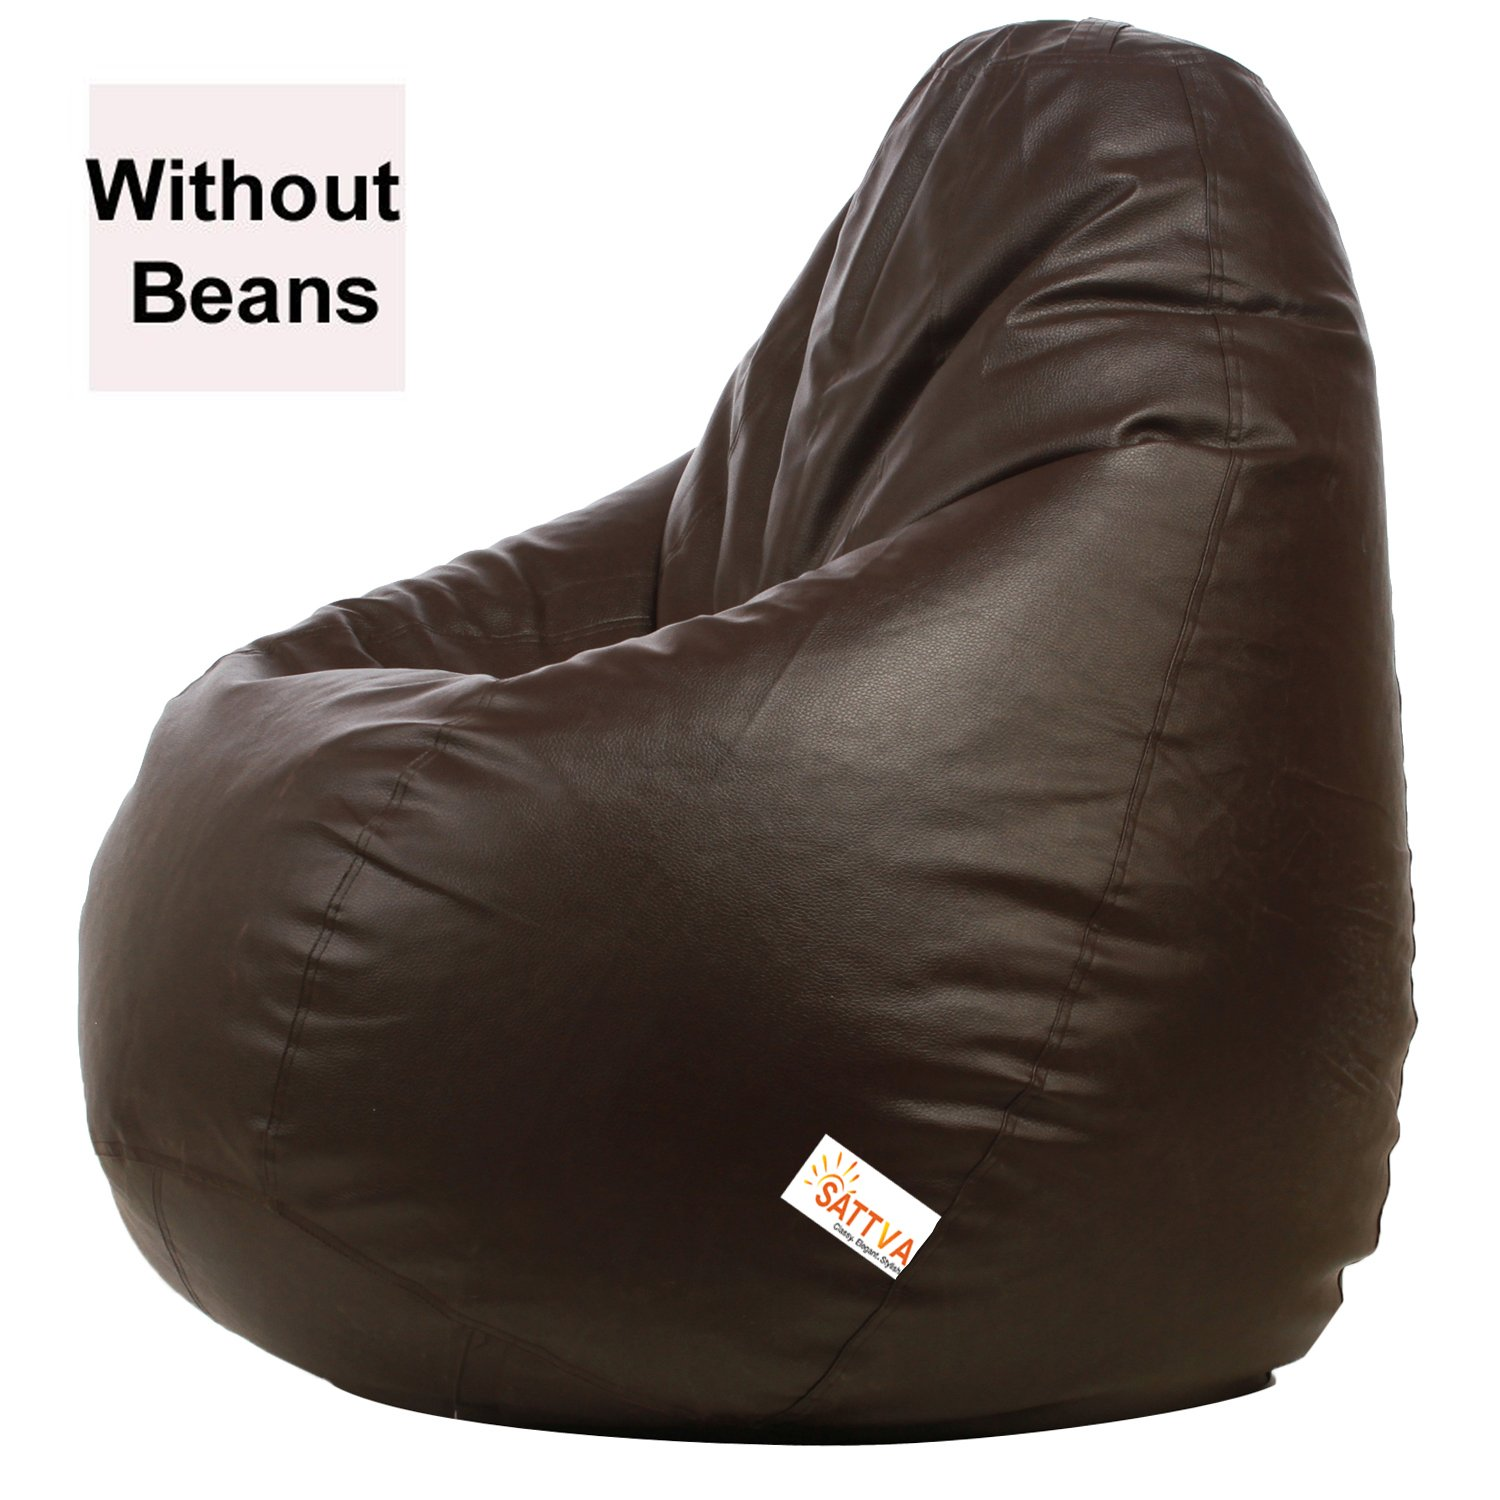 Sattva Xxl Brown Bean Bag Cover Online At Amazon Upto 70